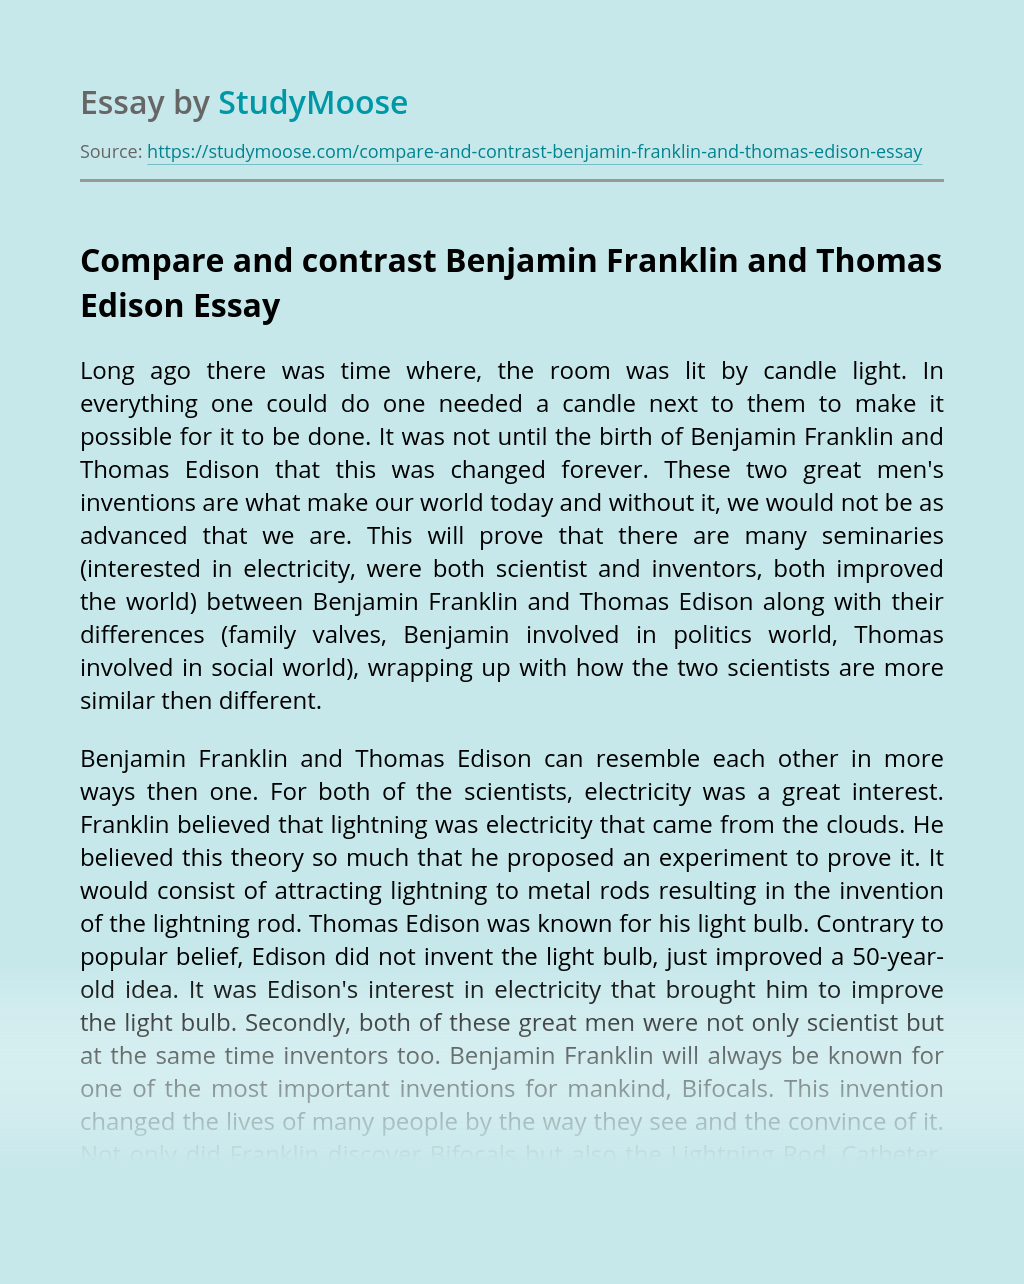 Compare and contrast Benjamin Franklin and Thomas Edison